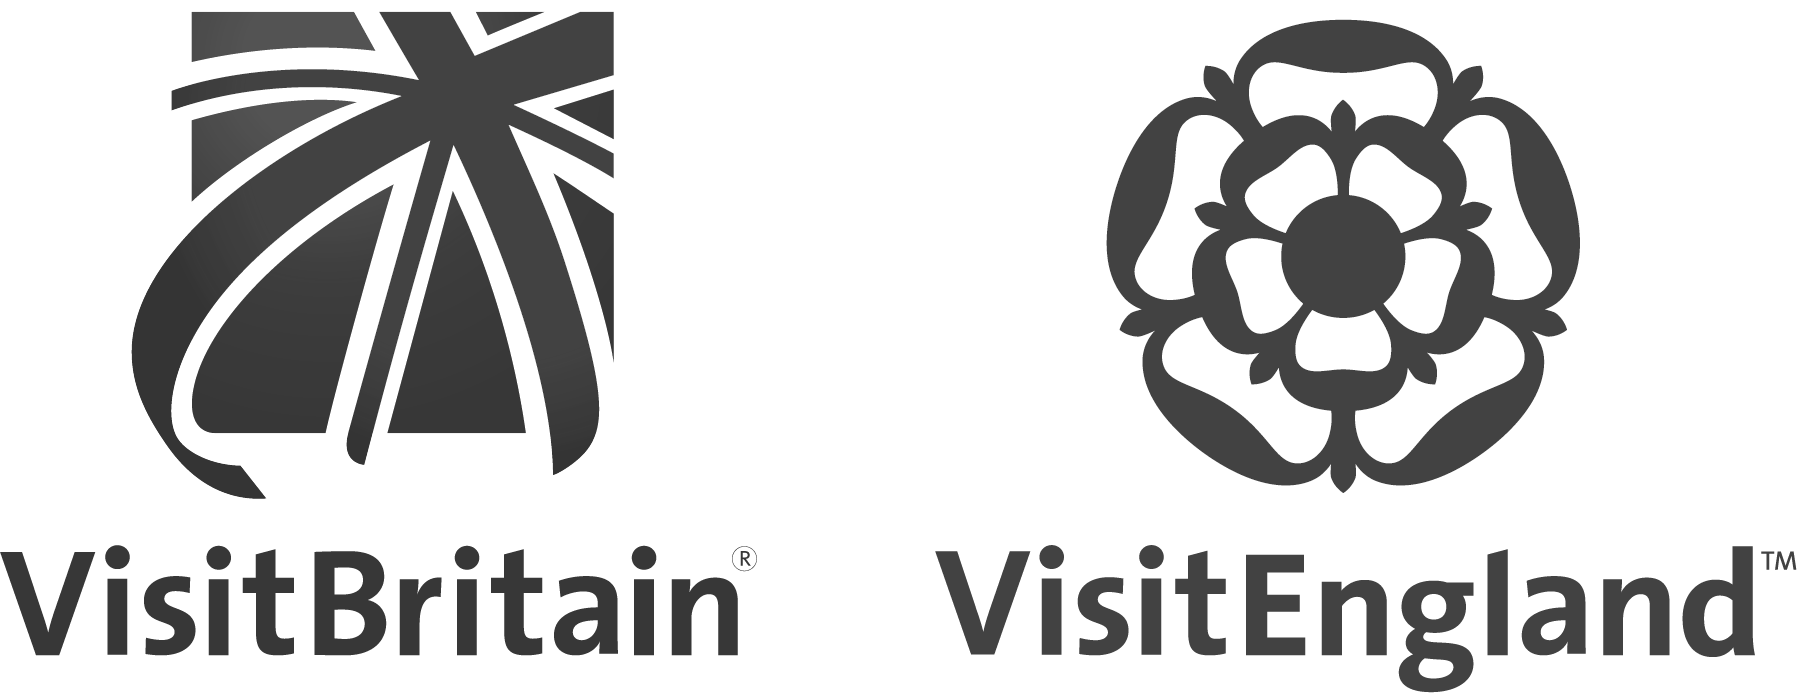 Visit Britain and Visit England logos black and white